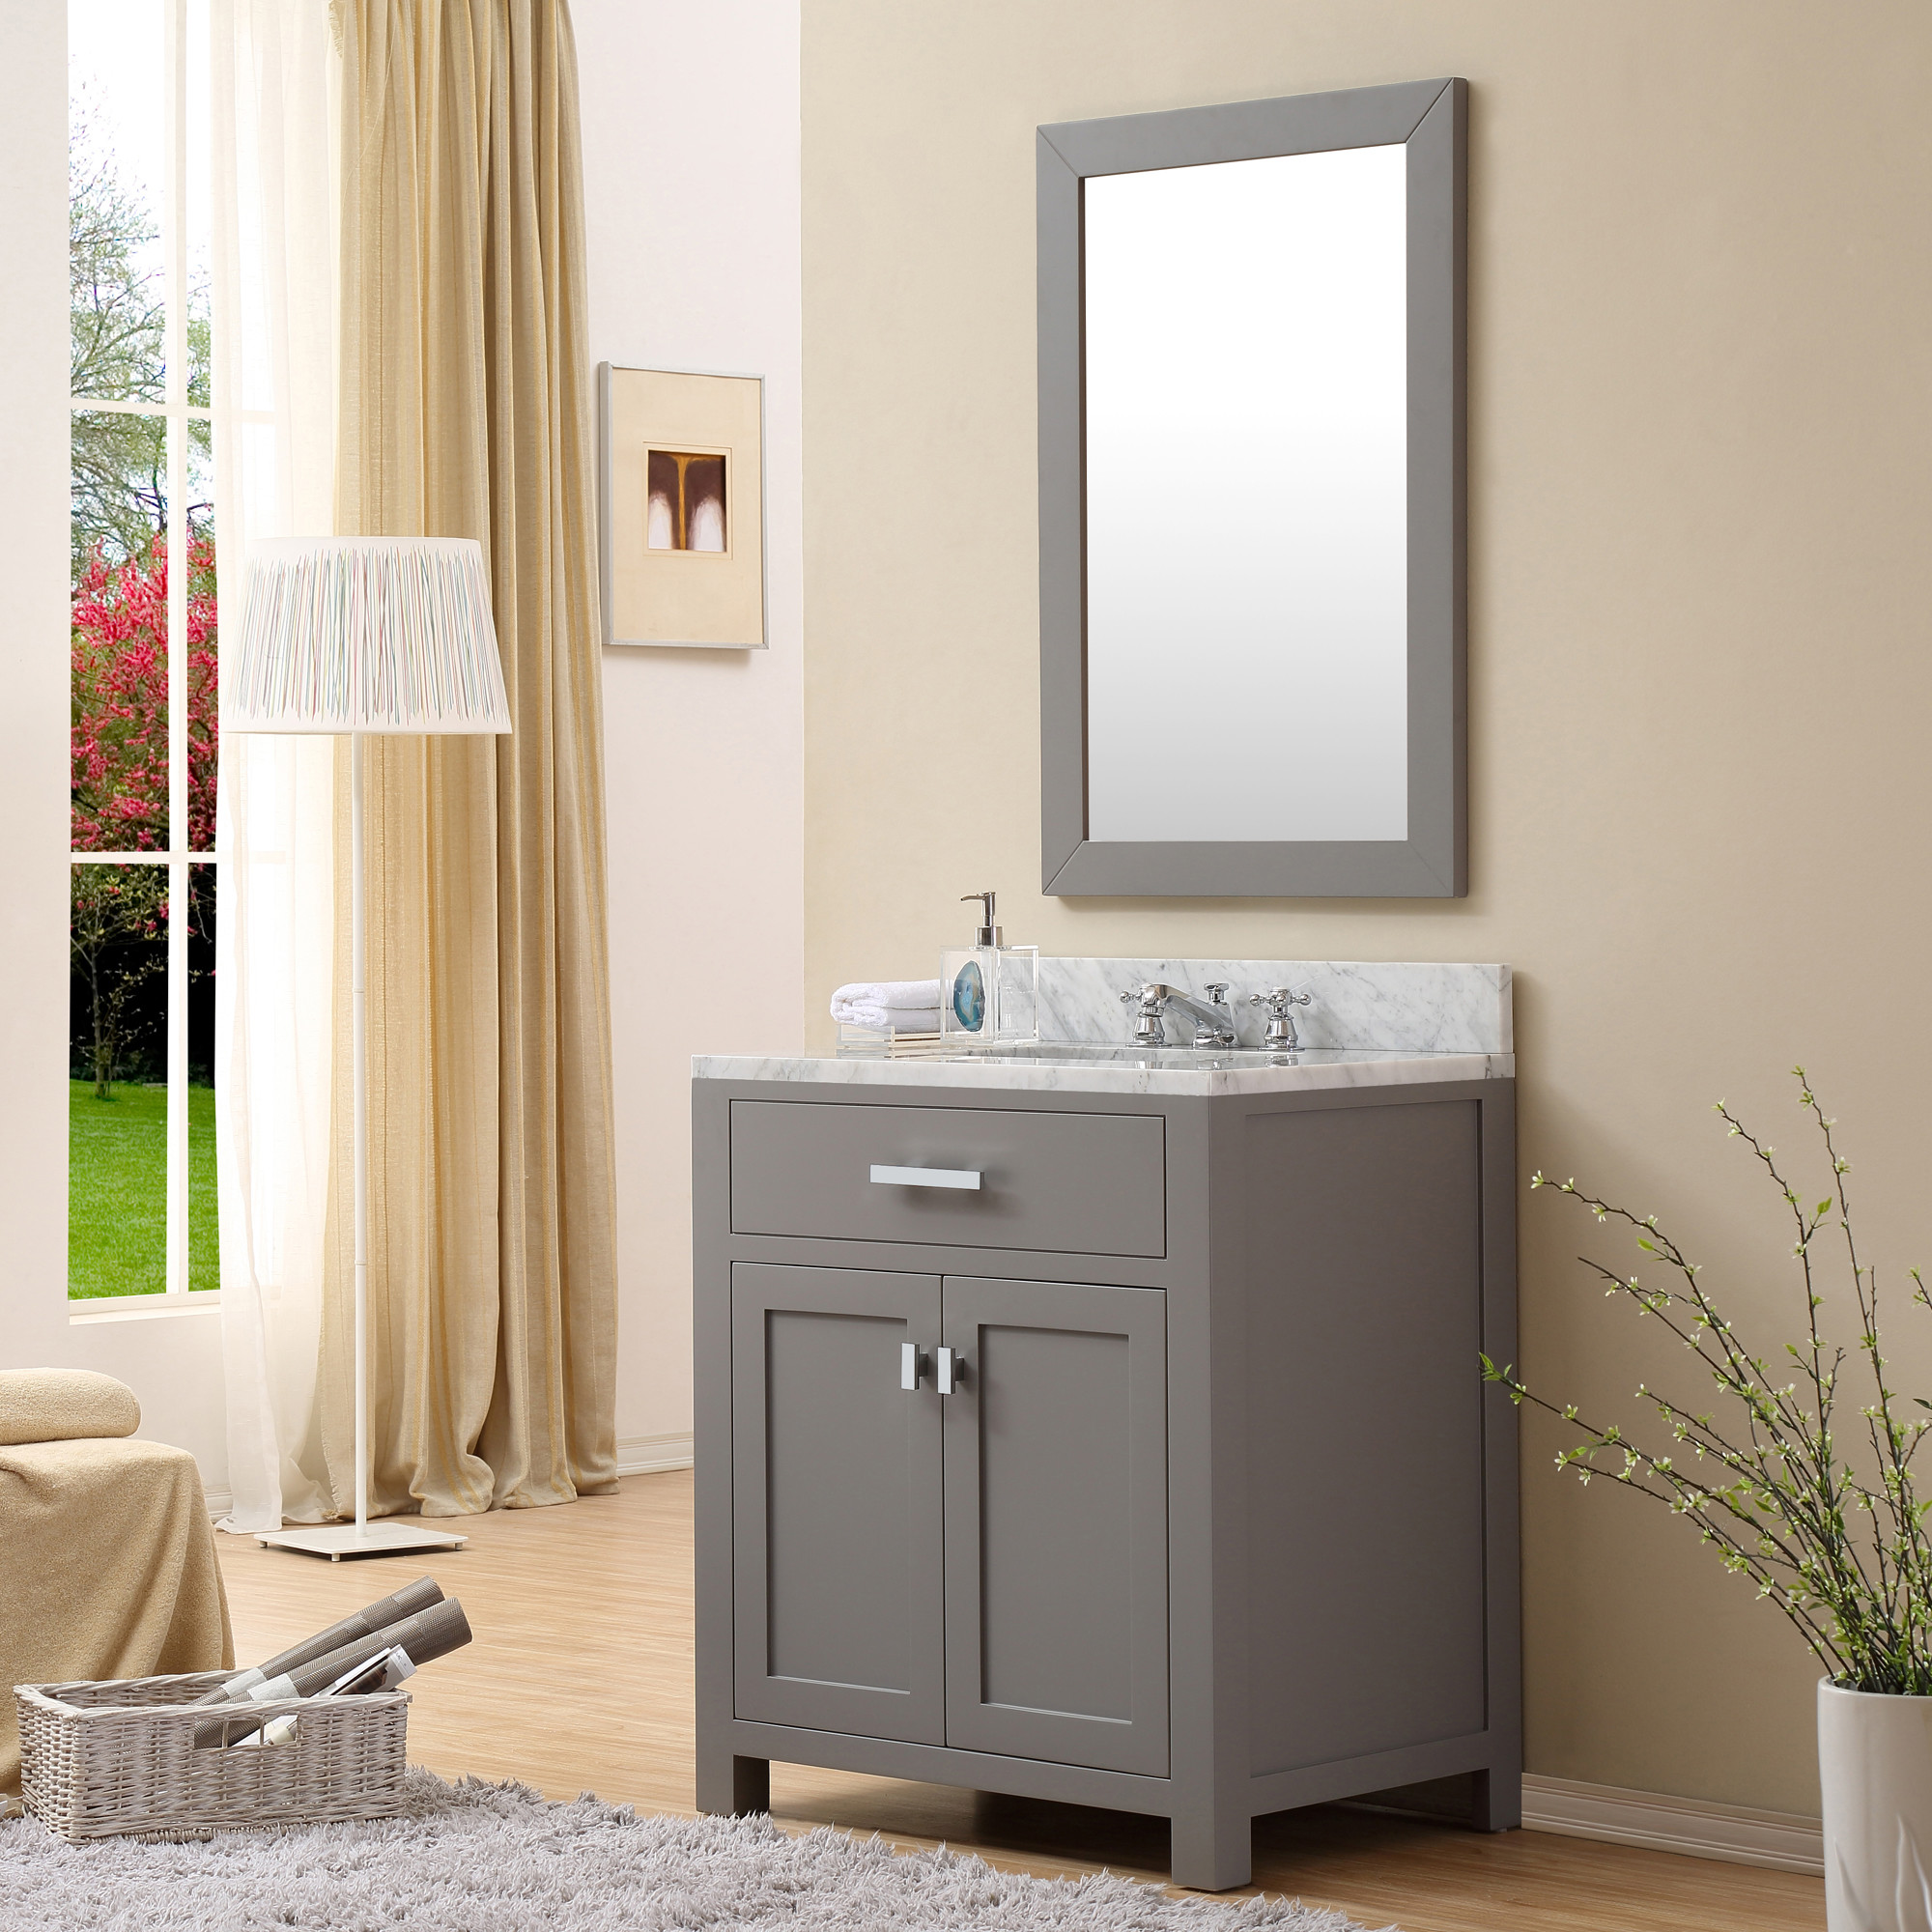 vanity teak sink vessel bathroom cabinet vanities wash grey optional mirror montara gray